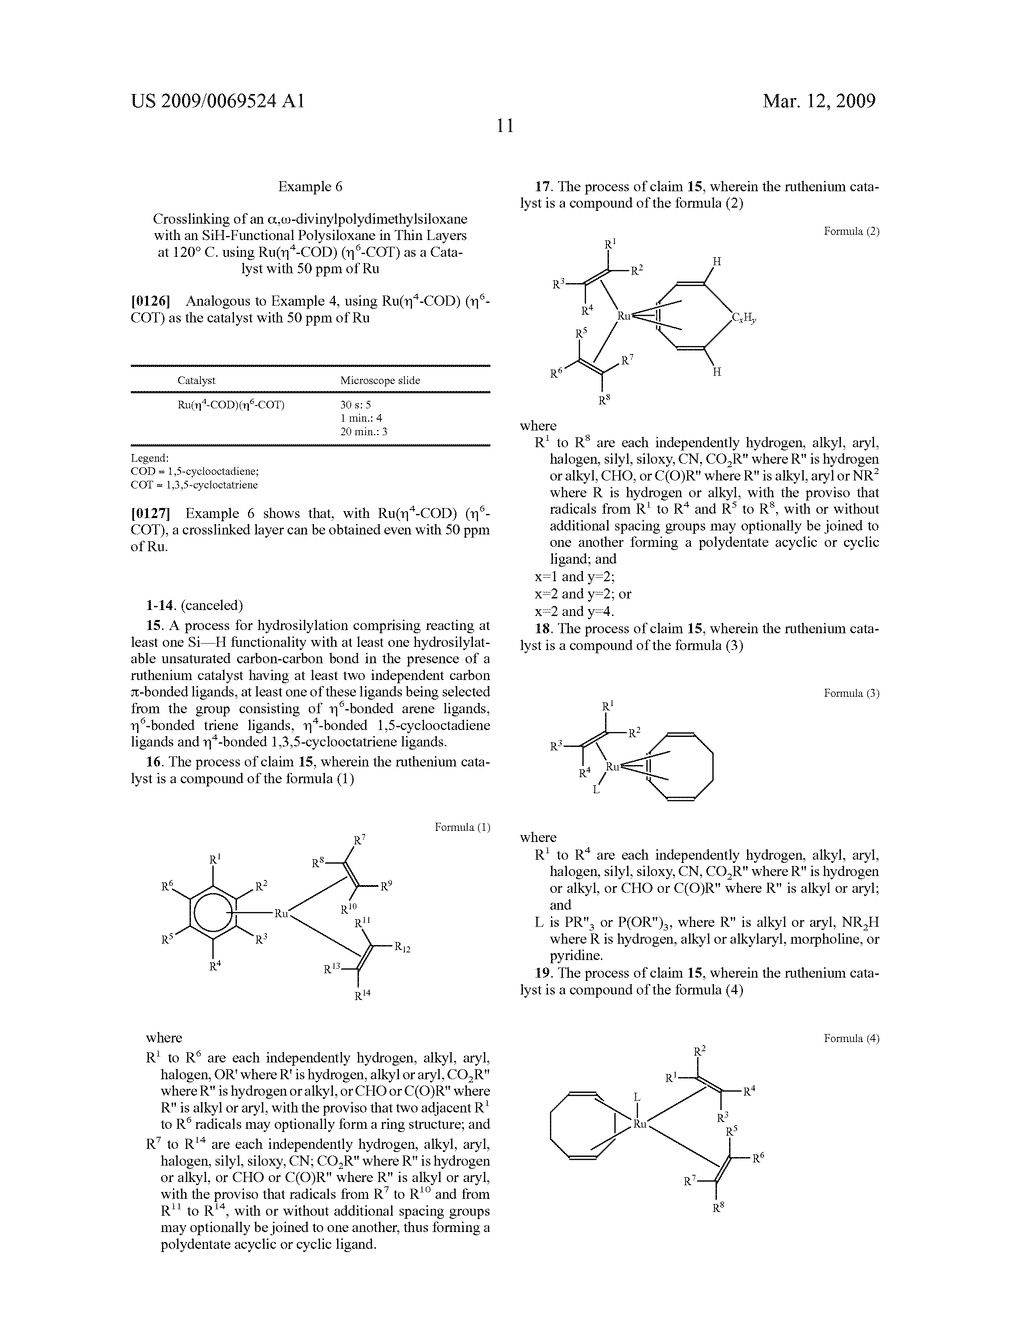 HYDROSILYLATION PROCESS IN THE PRESENCE OF RUTHENIUM CATALYZERS - diagram, schematic, and image 12